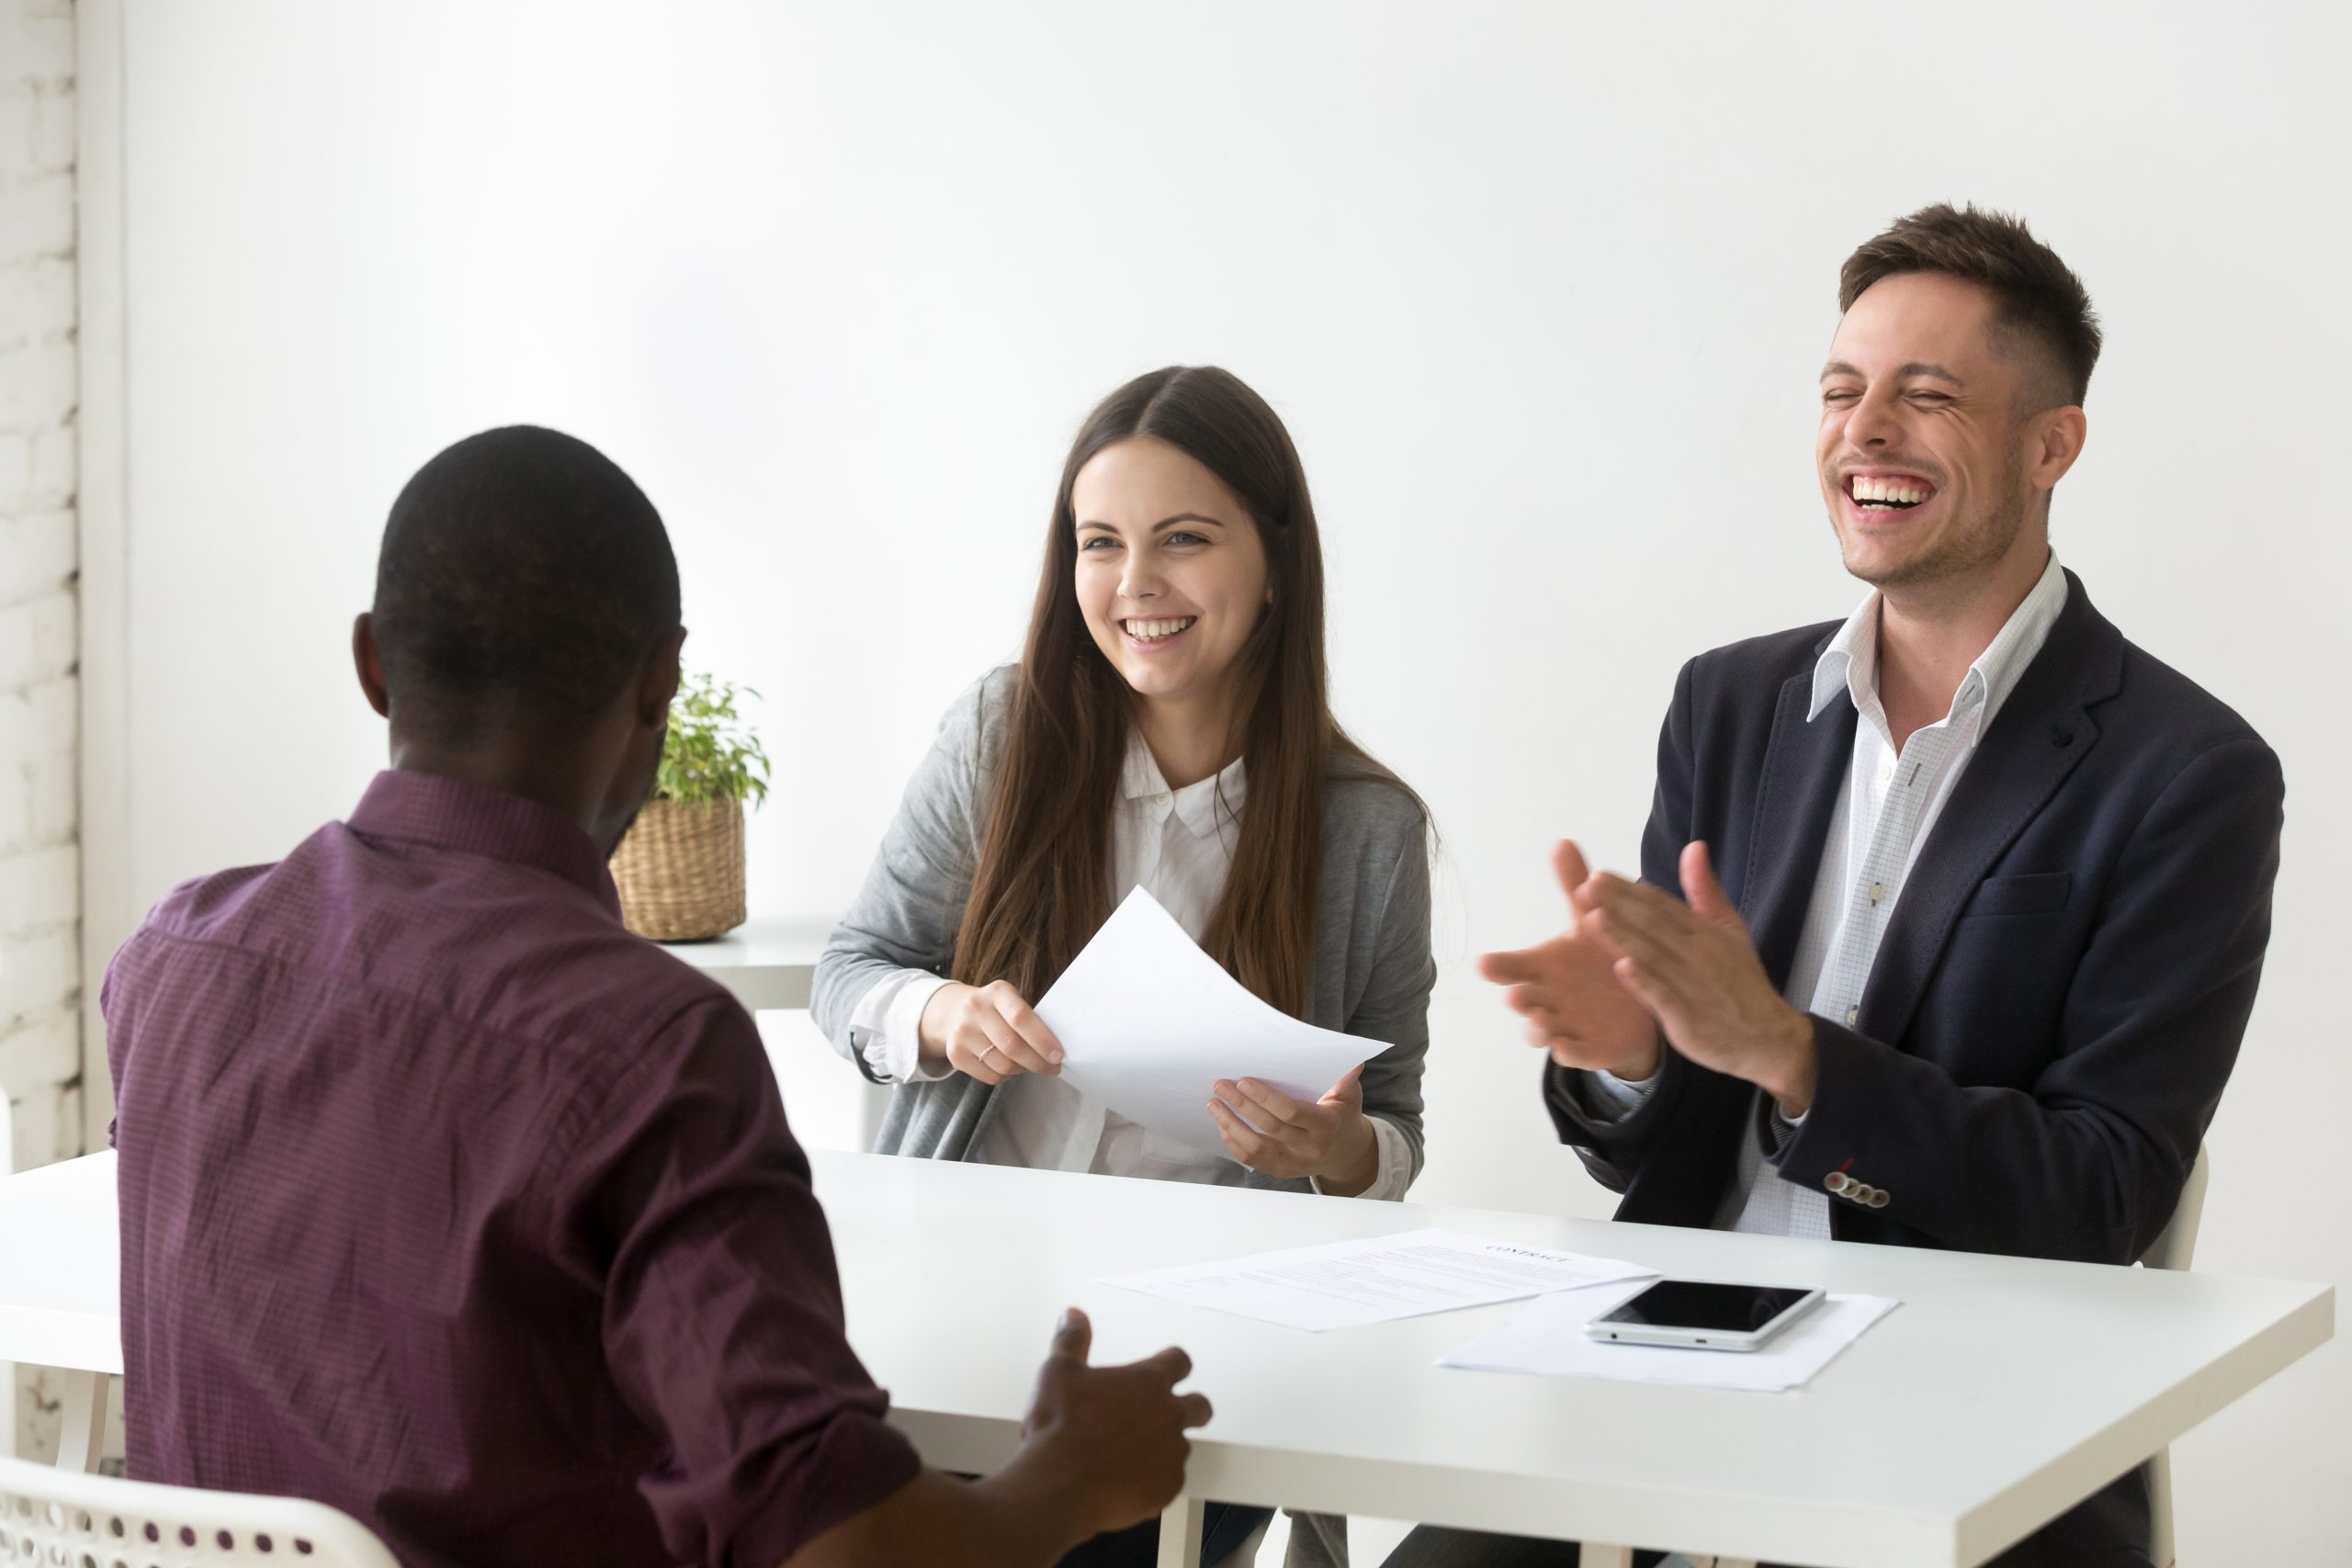 African applicant make hr laugh at job interview, good impressio